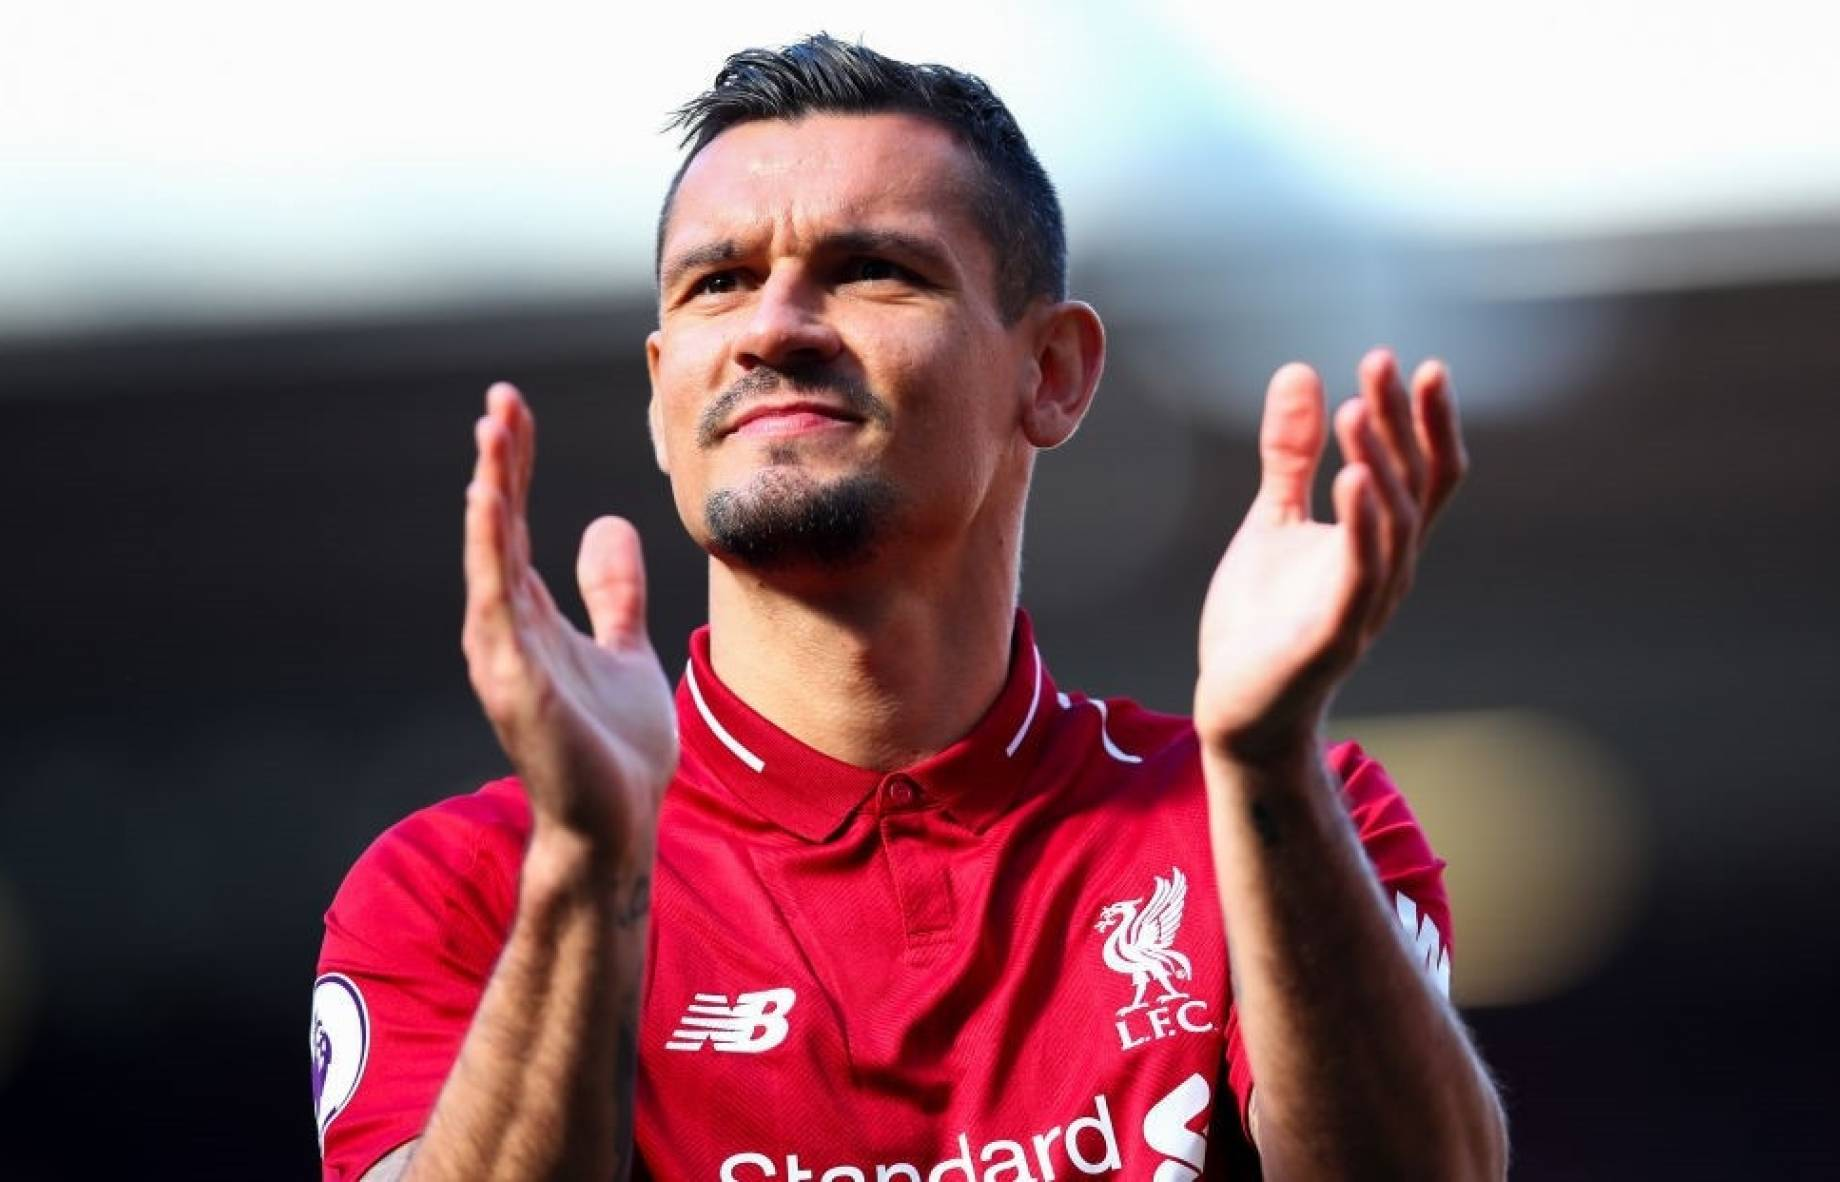 lovren_getty.jpg